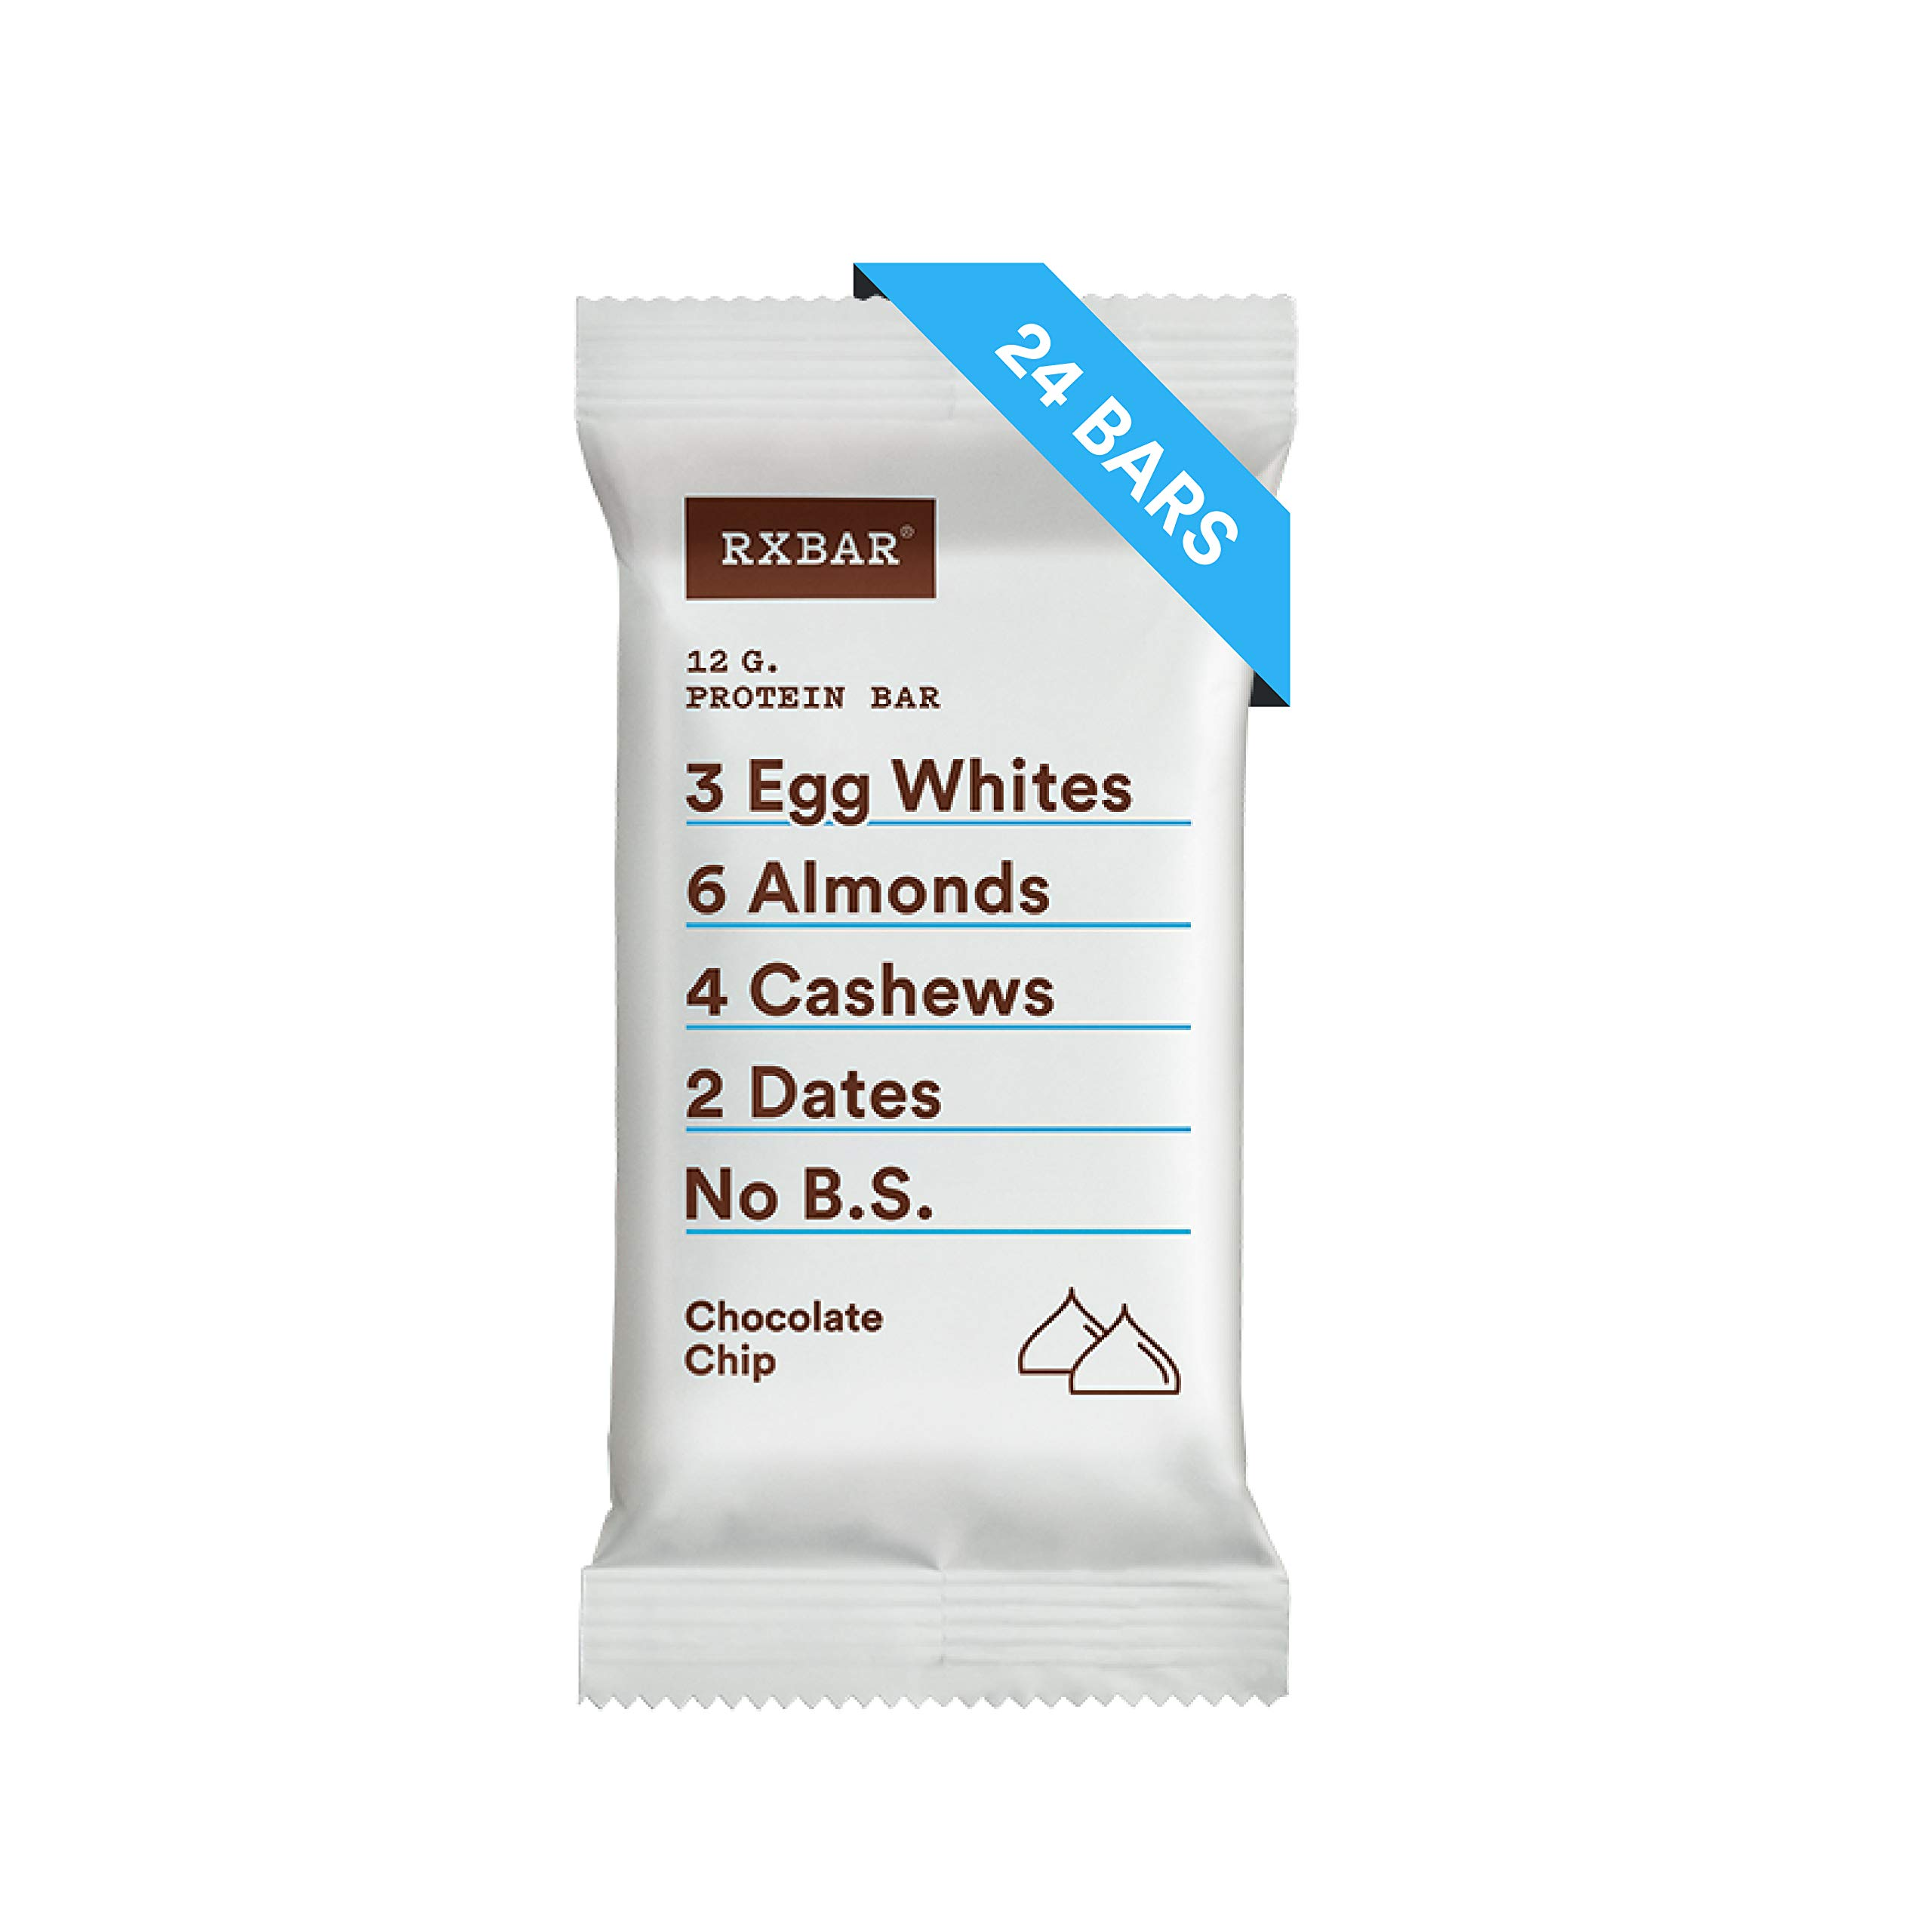 RXBAR Whole Food Protein Bar, Chocolate Chip, 1.83oz Bars, 24 Count